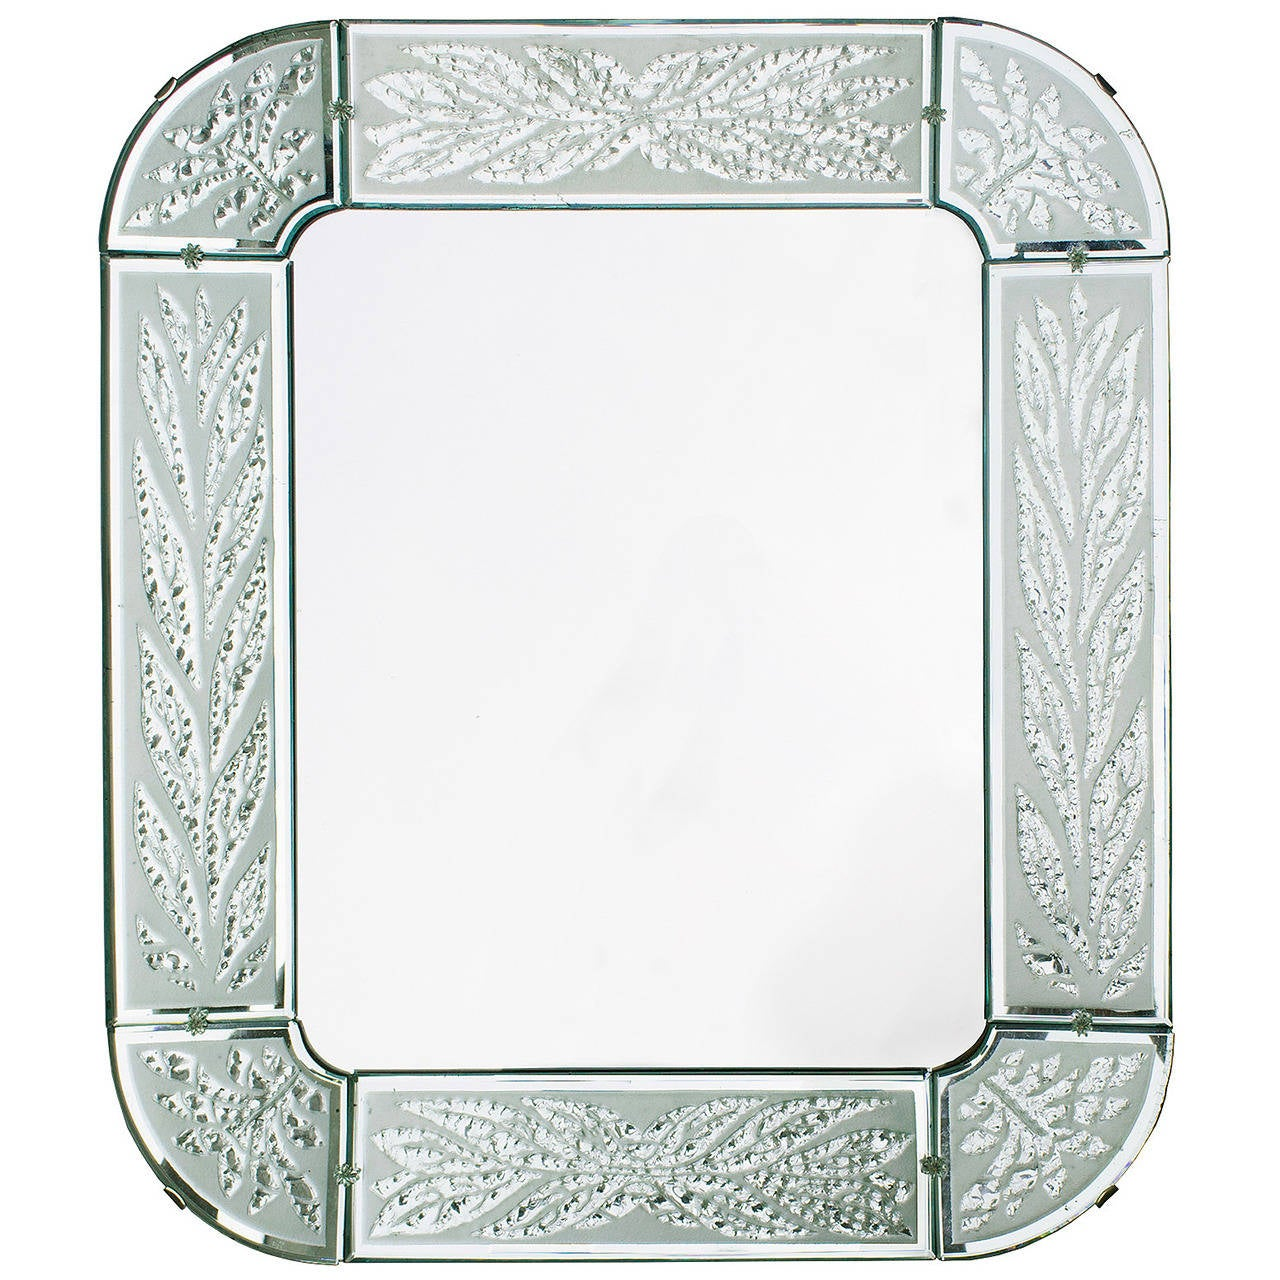 Scandinavian Modern Hand and Acid Etched Frame Mirror